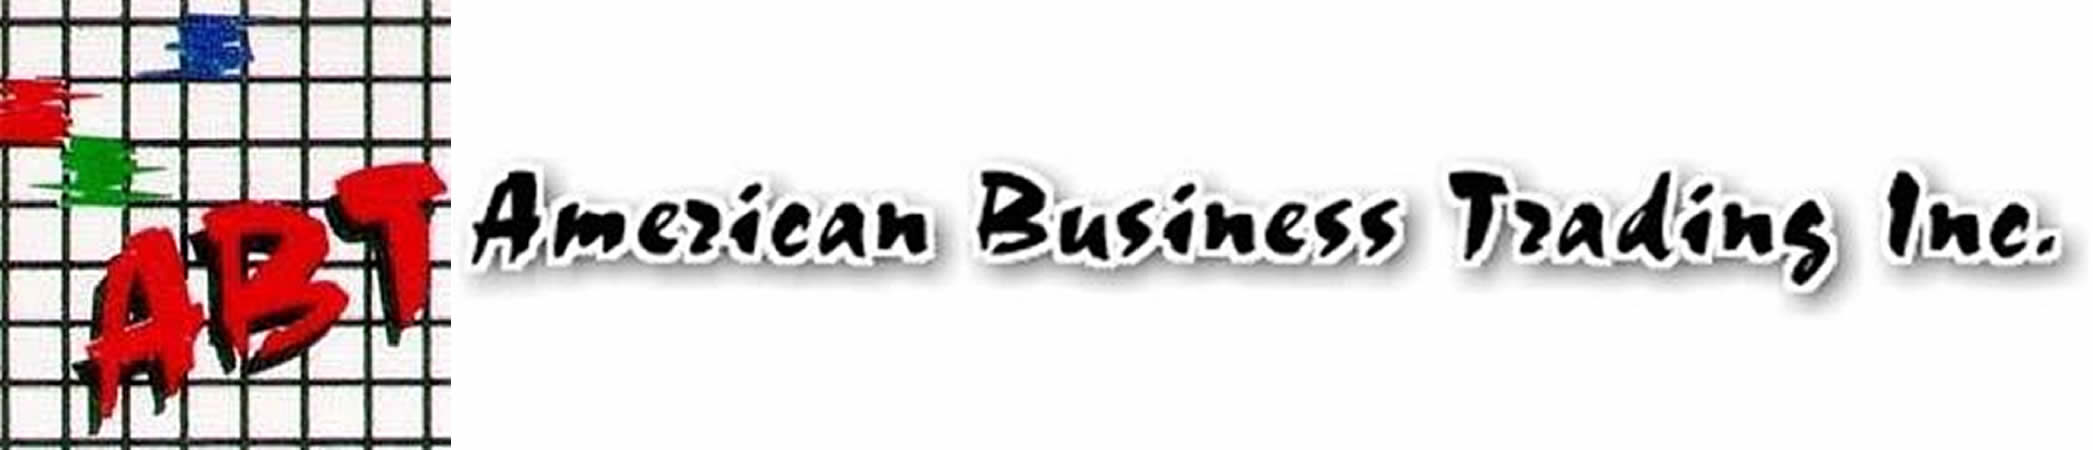 American Business Trading Inc.